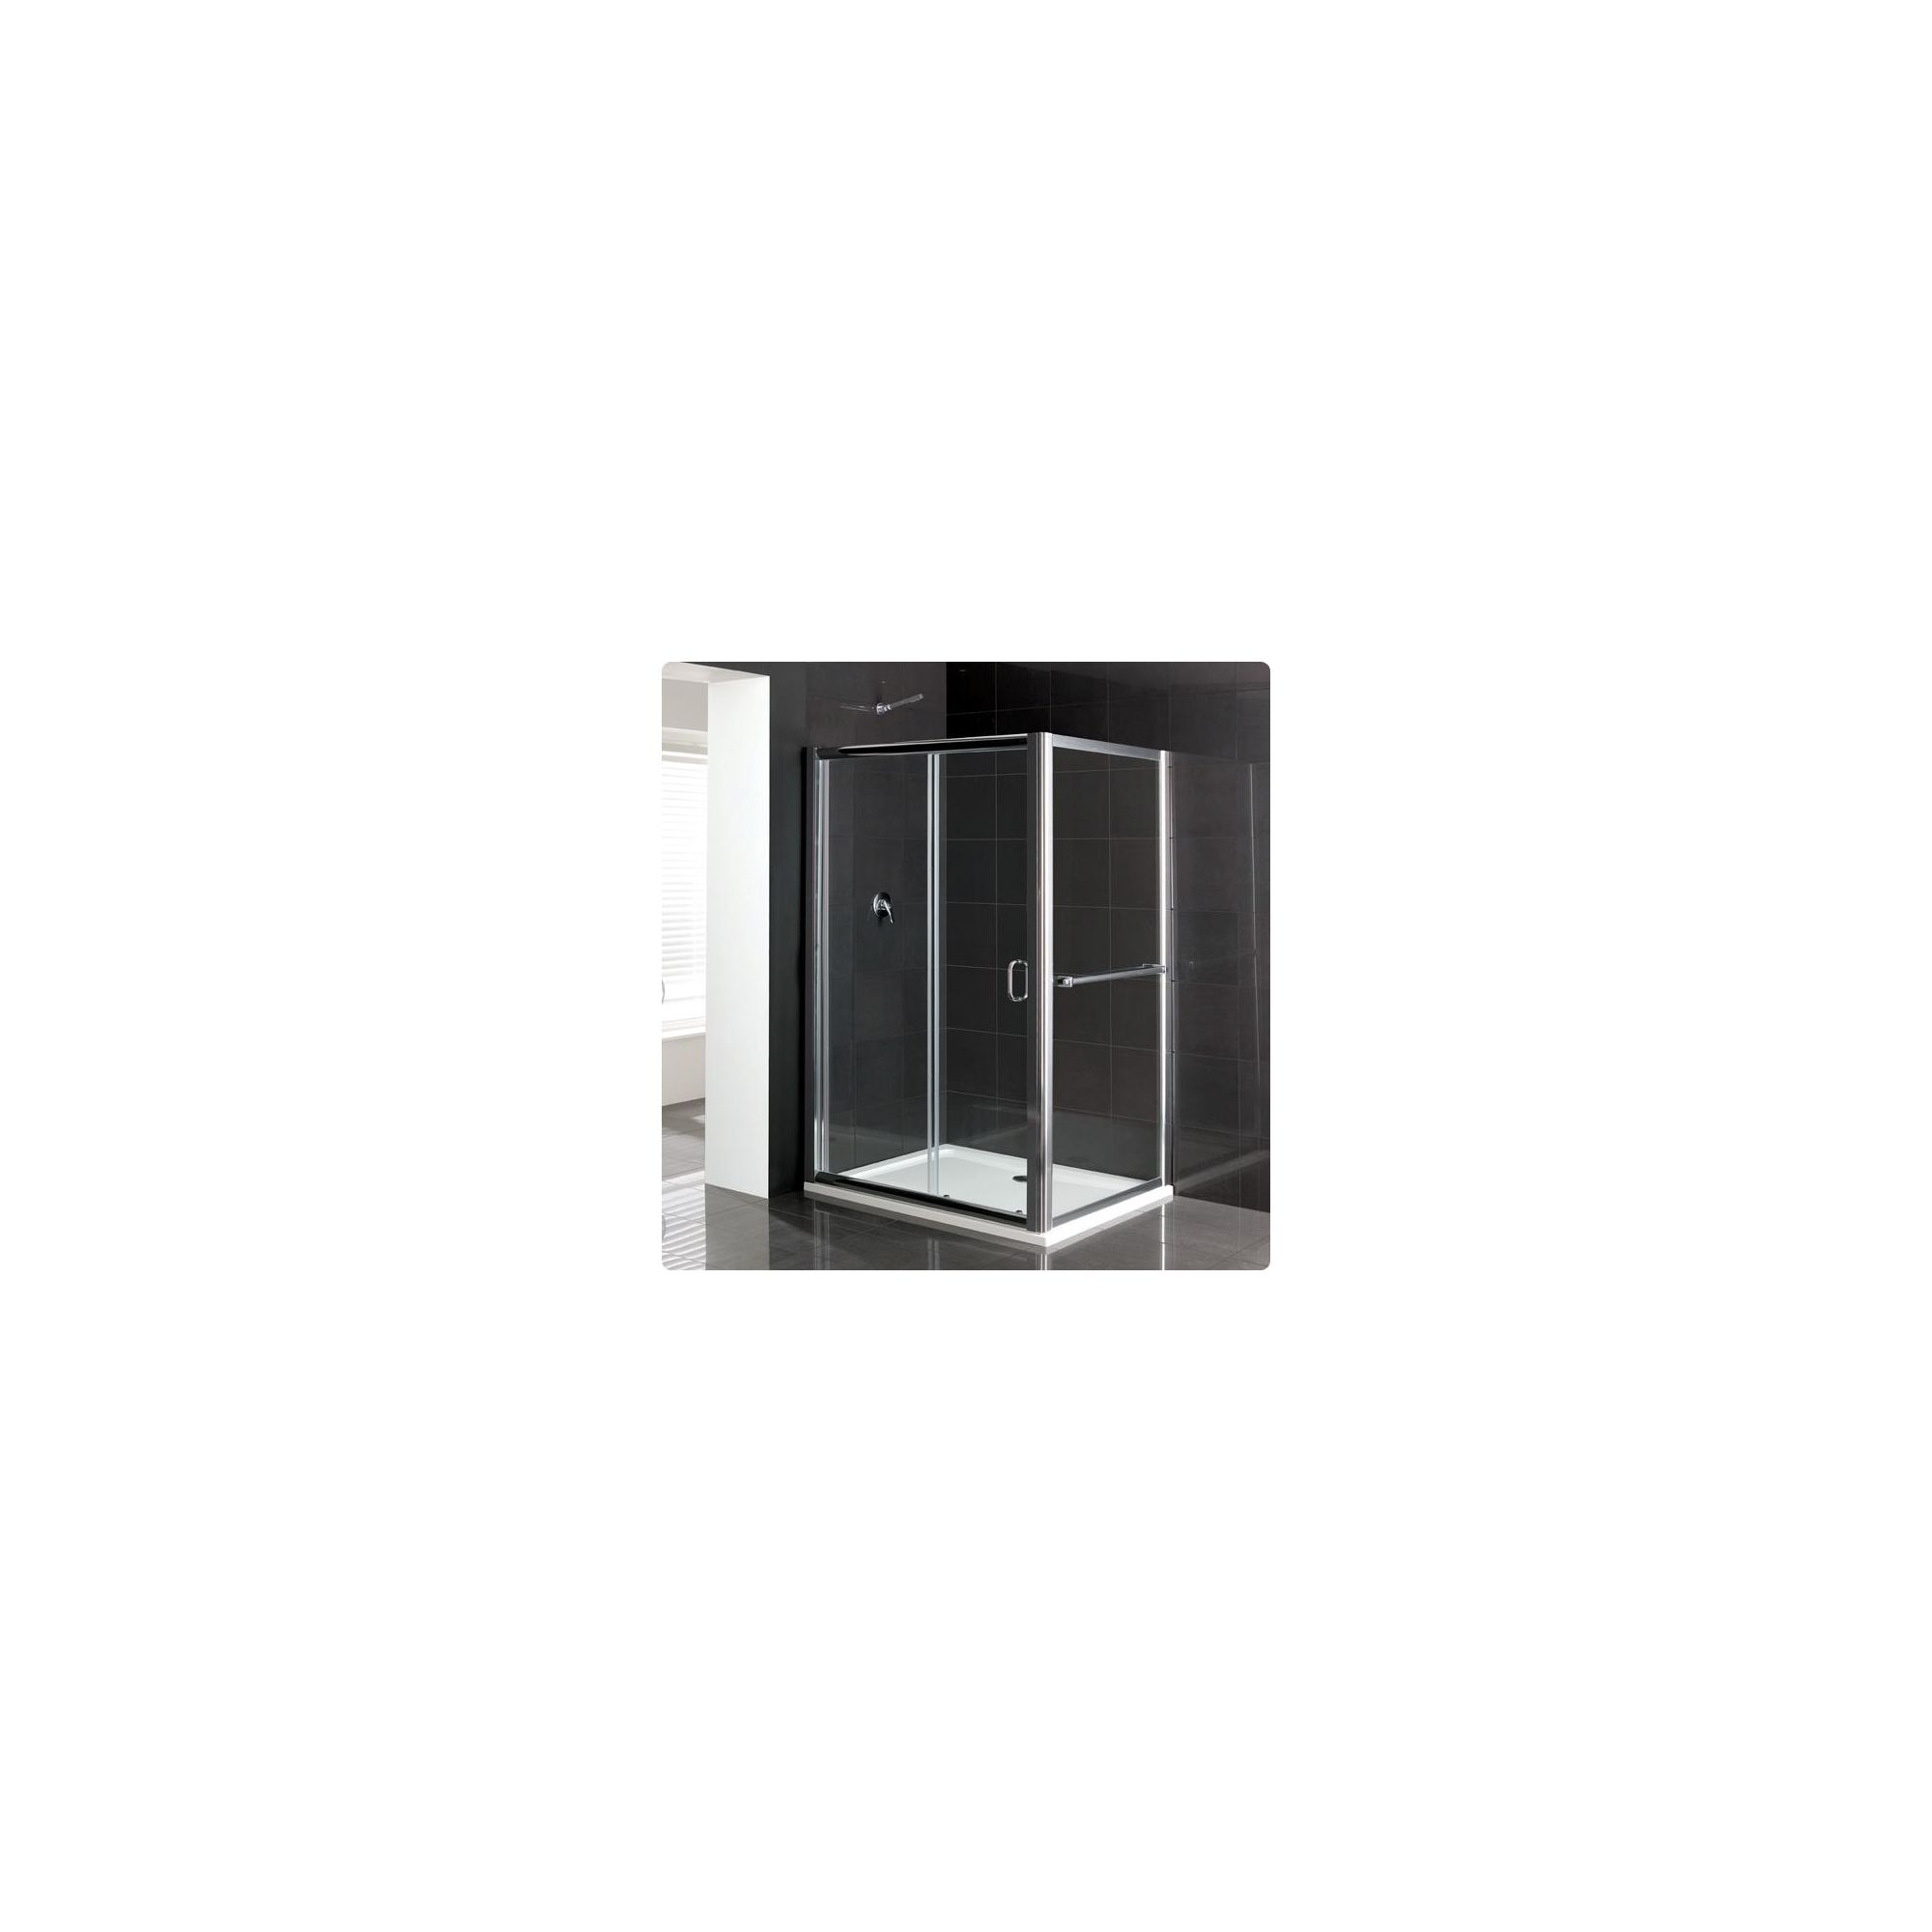 Duchy Elite Silver Sliding Door Shower Enclosure, 1100mm x 900mm, Standard Tray, 6mm Glass at Tesco Direct